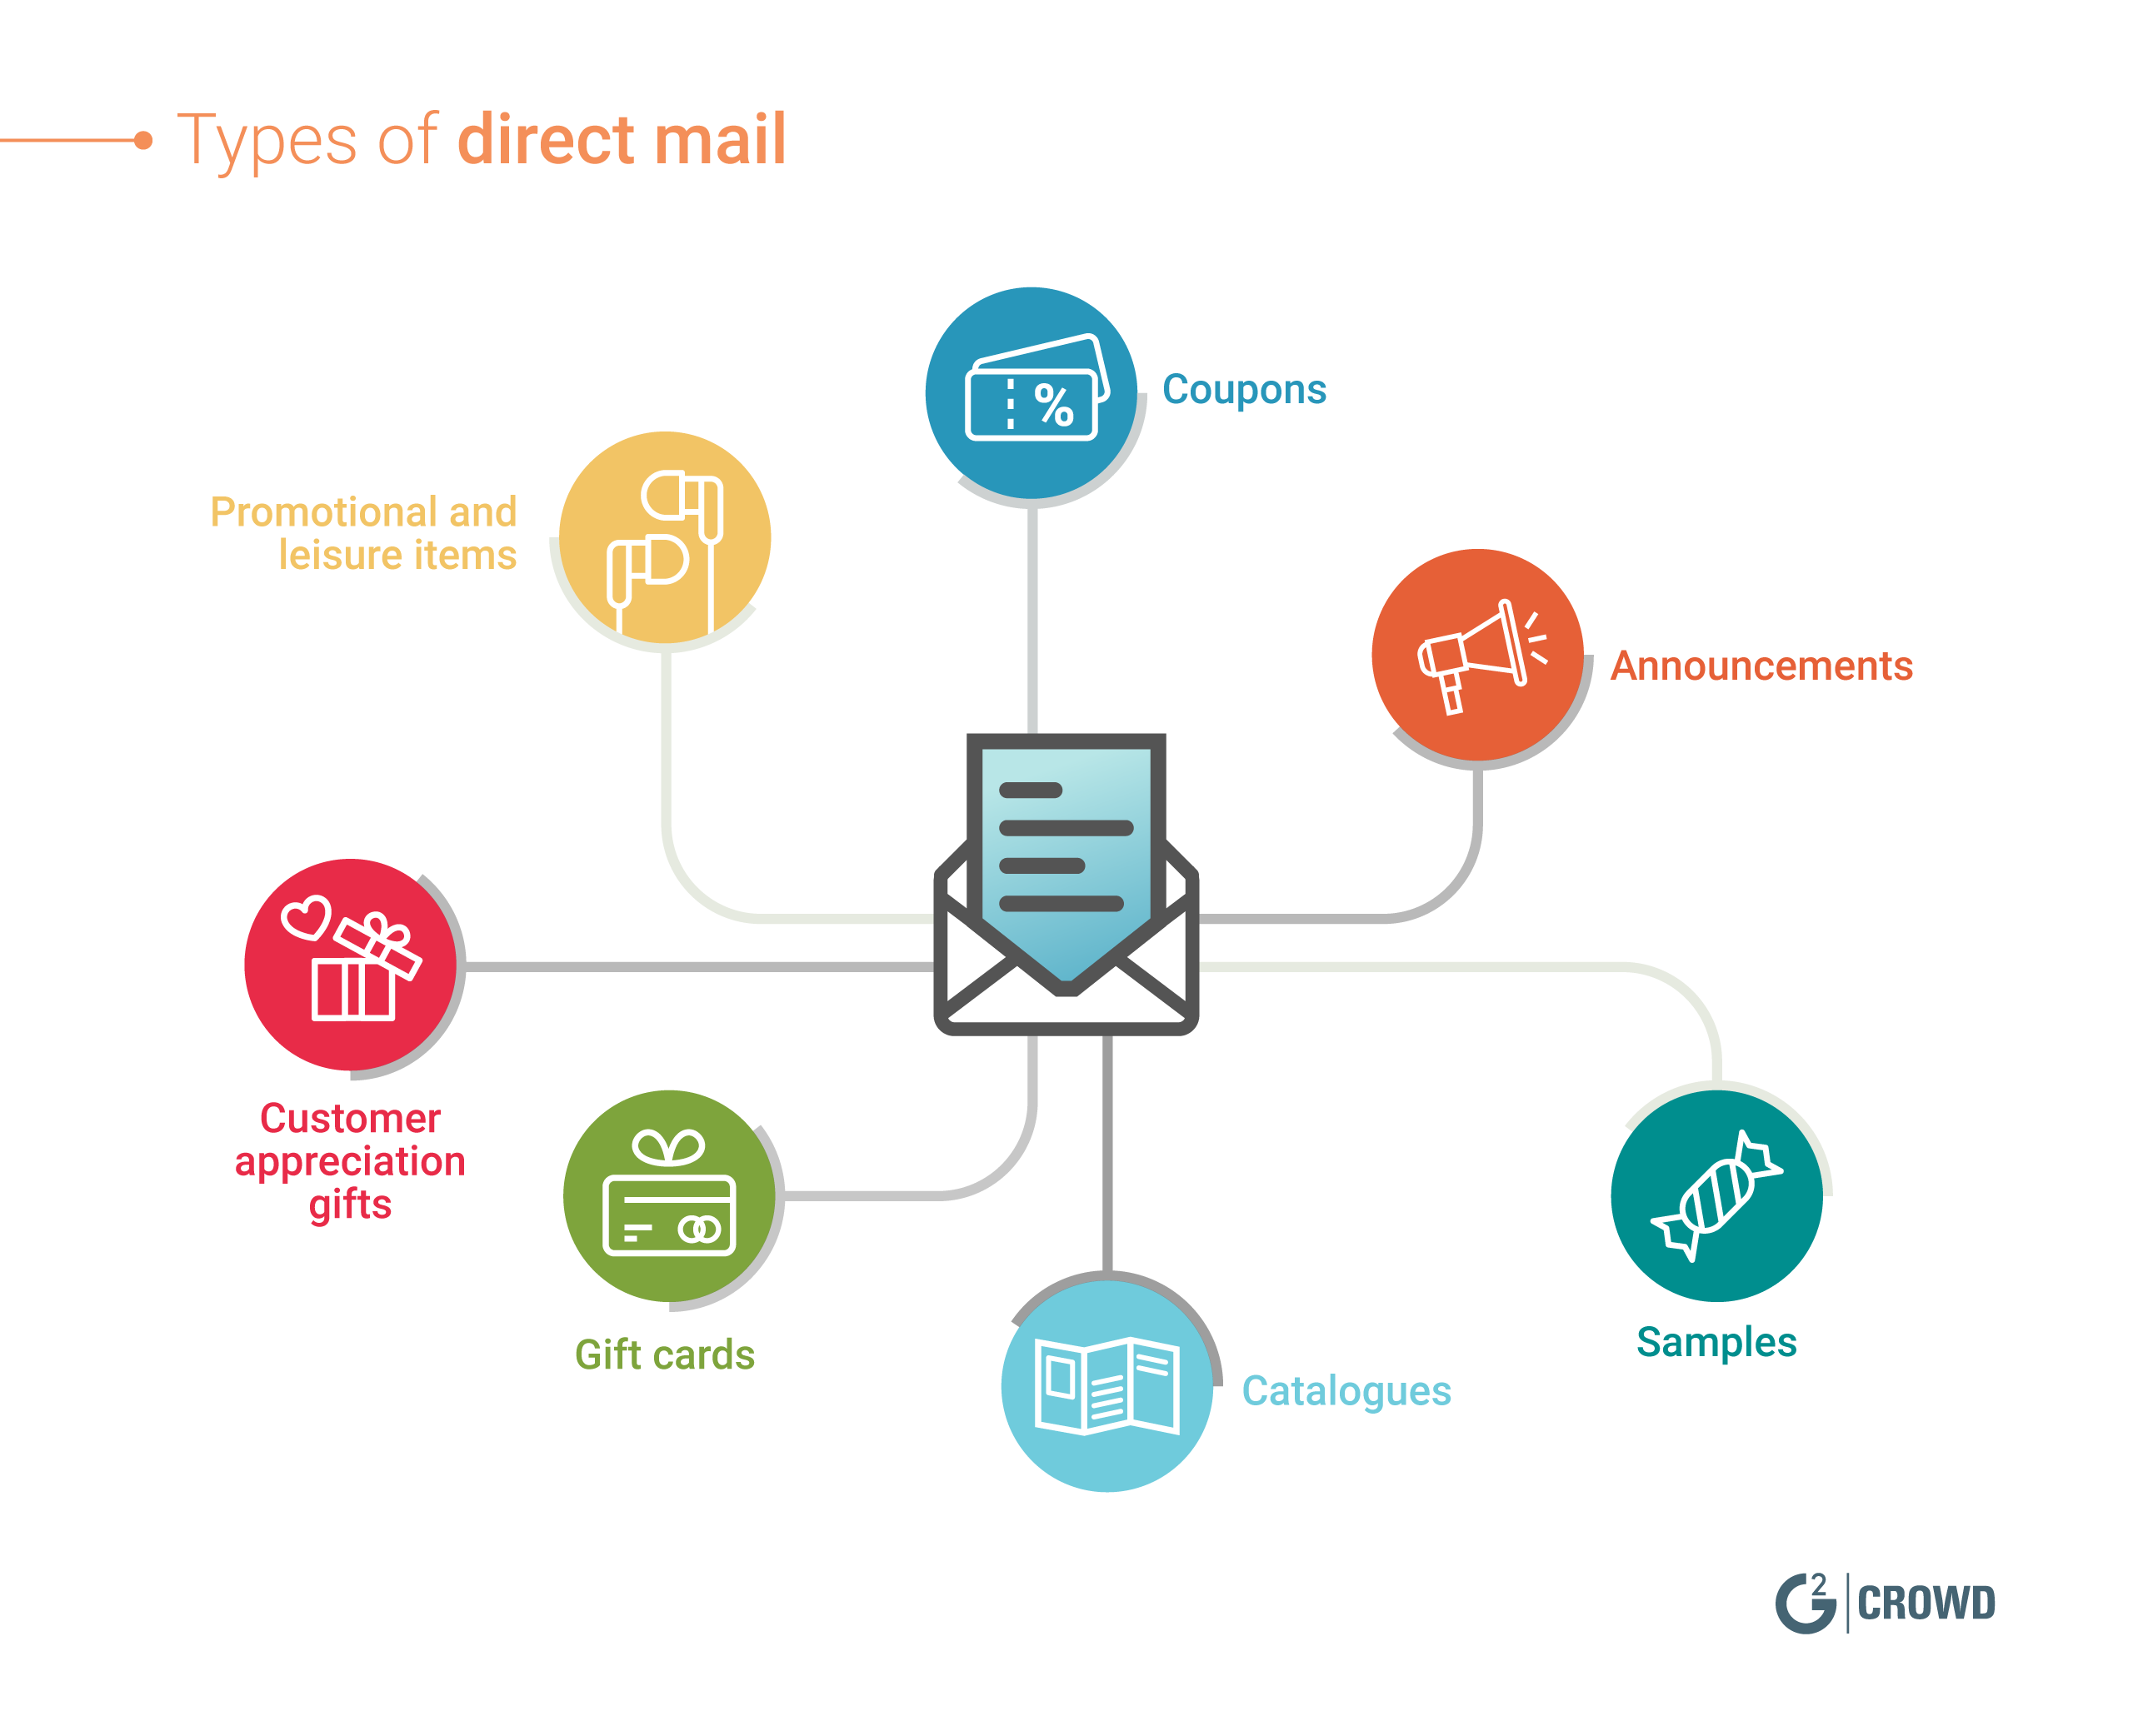 types-of-direct-mail